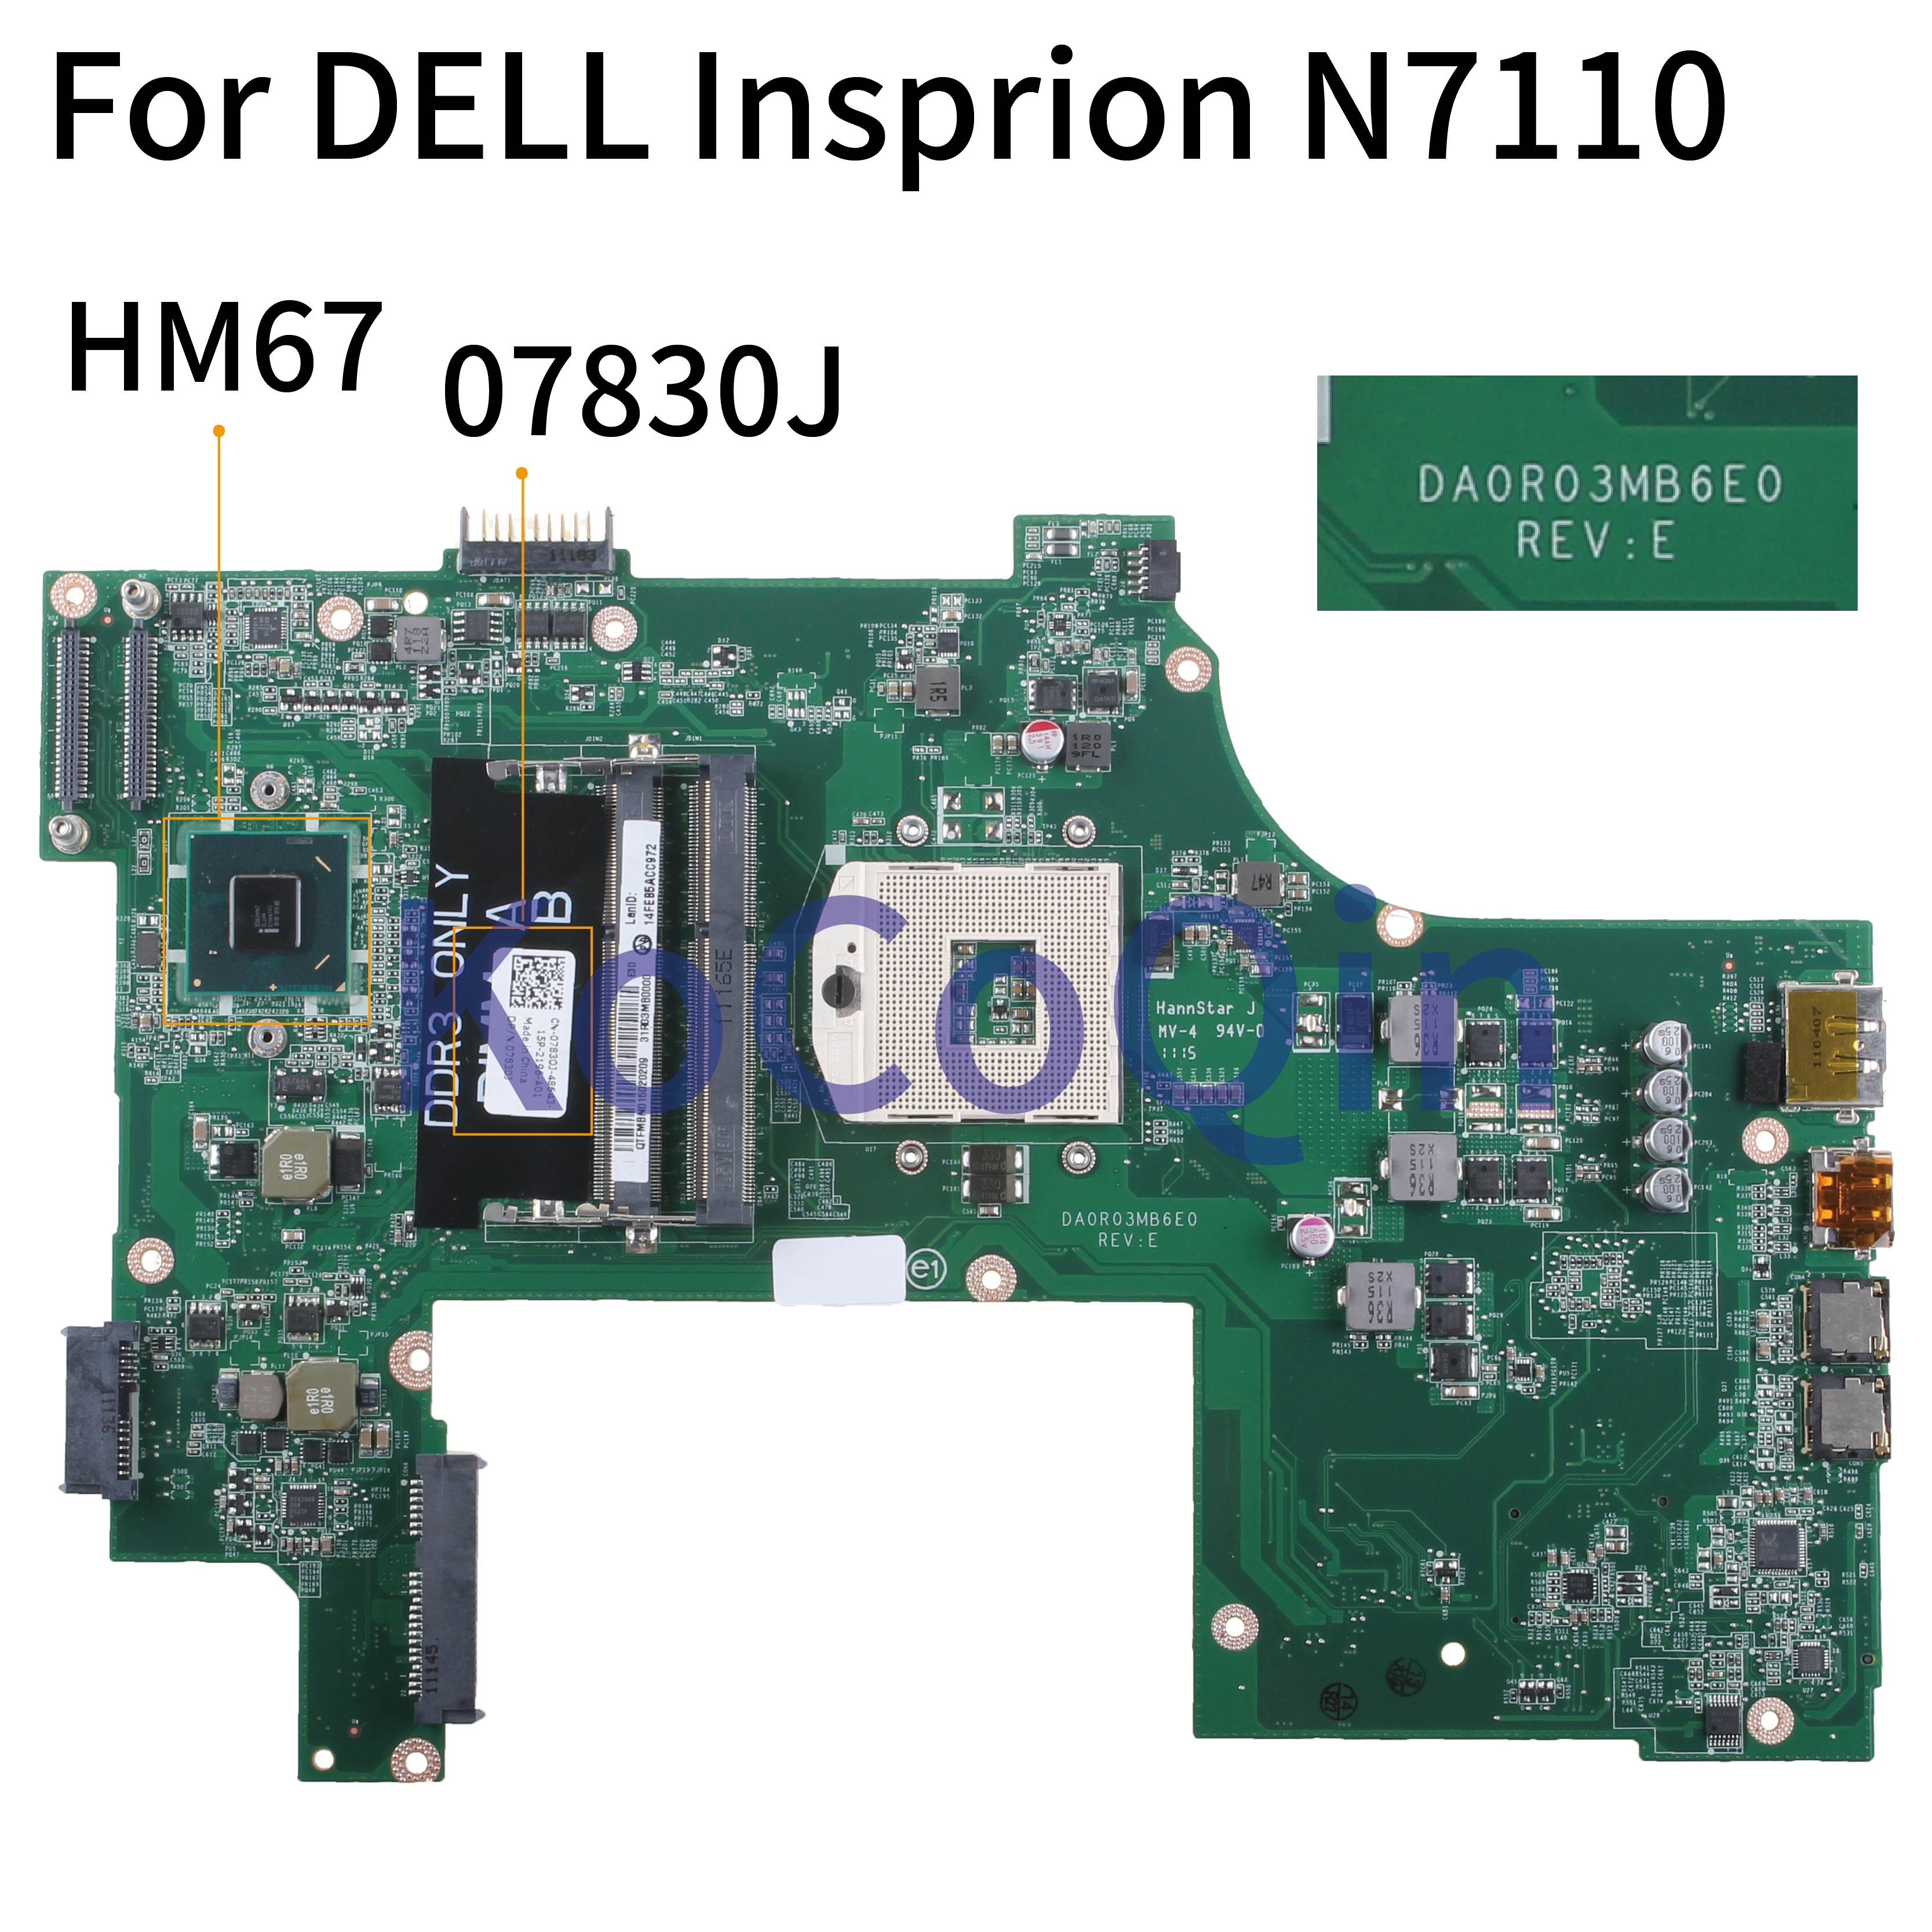 KoCoQin Laptop motherboard For DELL Insprion N7110 HM67 Mainboard DA0R03MB6E0 07830J